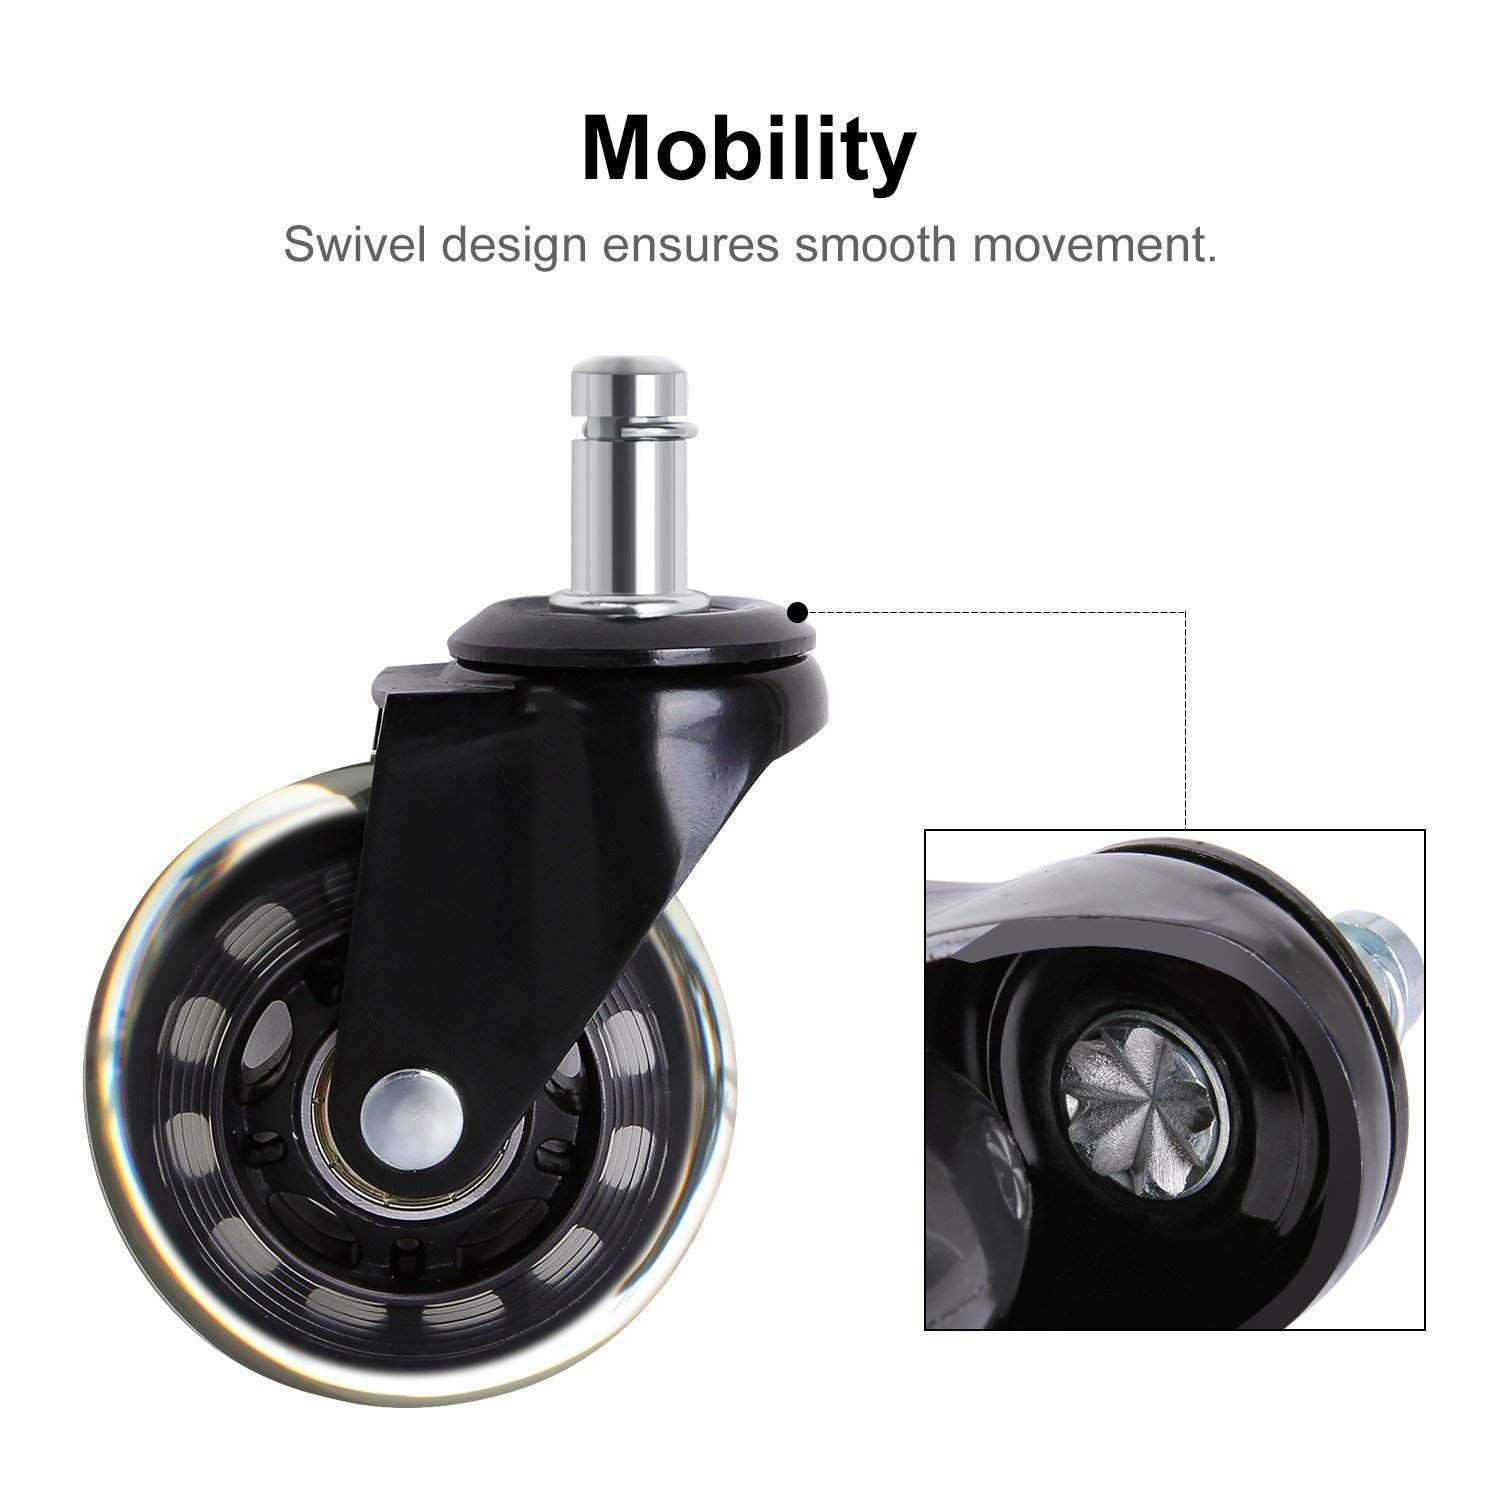 Furniture Caster Replacement Wheel Office Chair Caster Wheels for Your Desk Chair Quiet Rolling Casters Wheel Diameter2.9Furniture Caster Replacement Wheel Office Chair Caster Wheels for Your Desk Chair Quiet Rolling Casters Wheel Diameter2.9